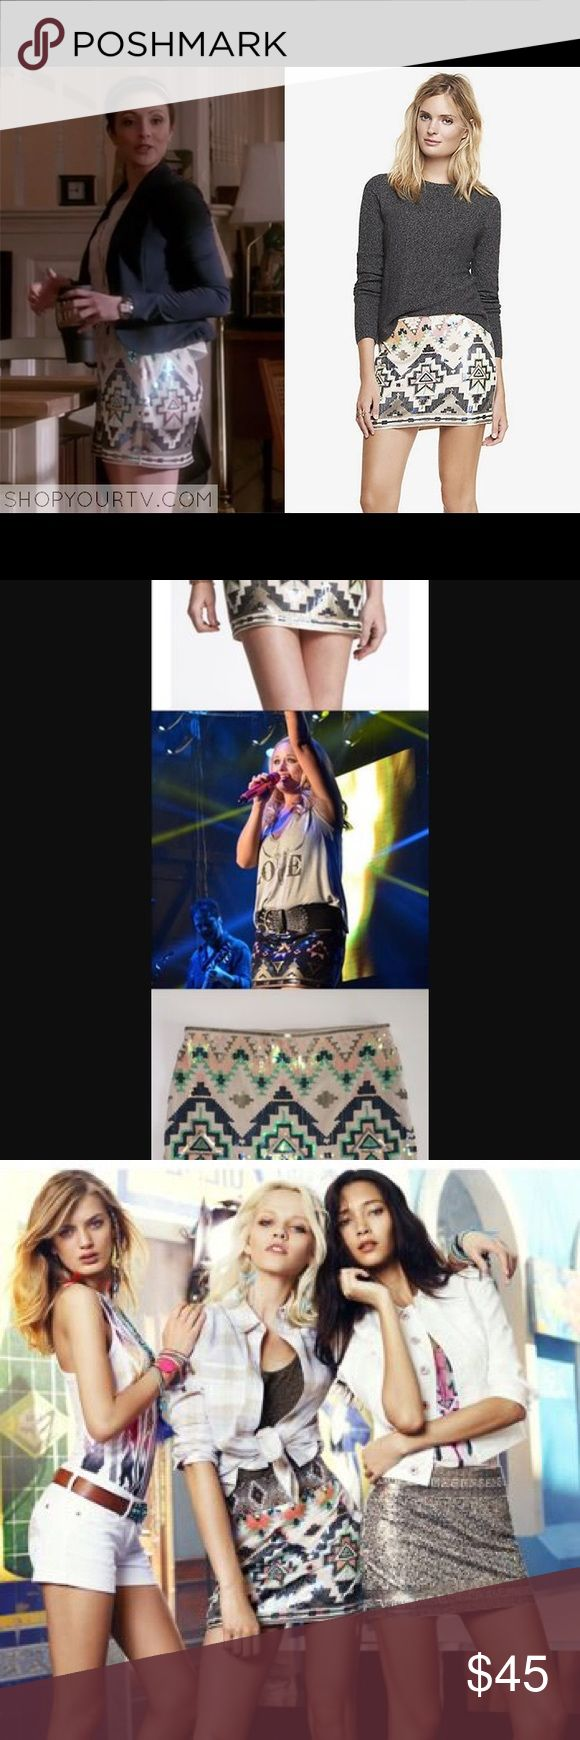 Express Aztec Sequin Mini Skirt ASO bachelorette! This skirt has been ALL over TV! ASO an episode of the bachelorette, chasing life, Miranda lambert... and it is NO SURPRISE! It's stunning, and sold out everywhere. This is like new!  If it is listed it is available ⭐️No trades Authentic  ☀️No Modeling MAJOR BUNDLE DISCOUNTS Express Skirts Mini